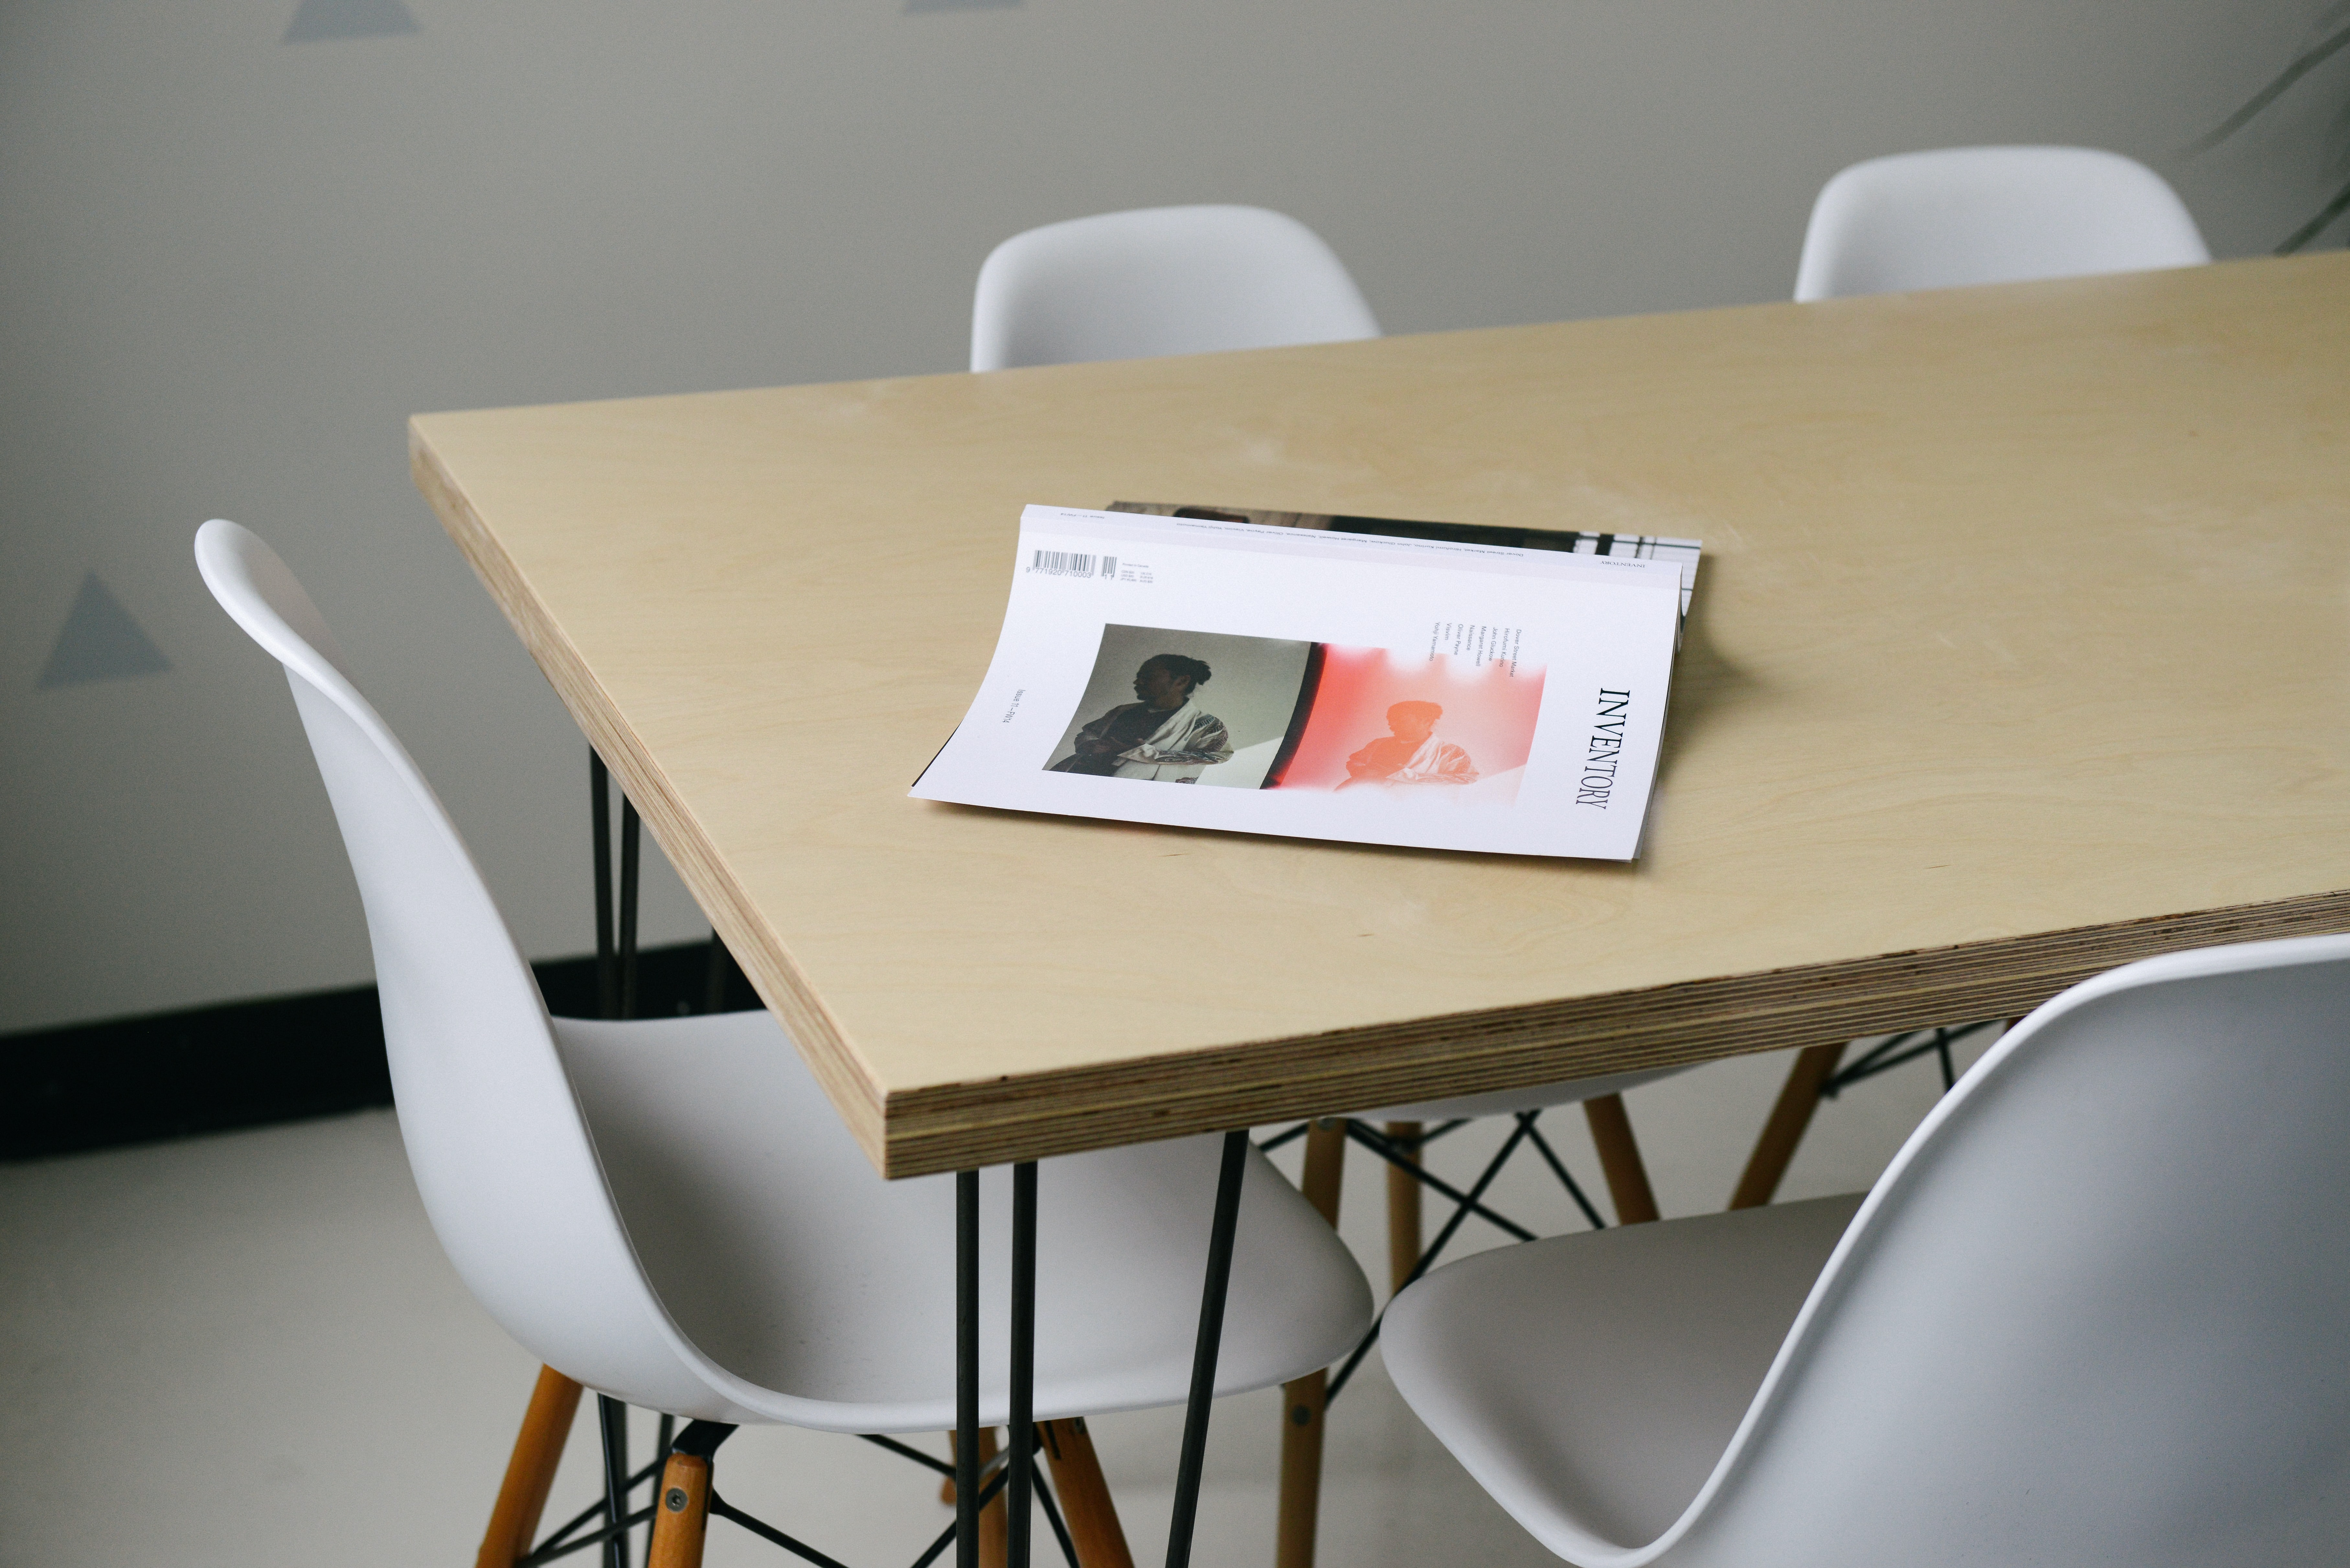 A business book turned over on a wooden table surrounded by chairs in a simple office setting